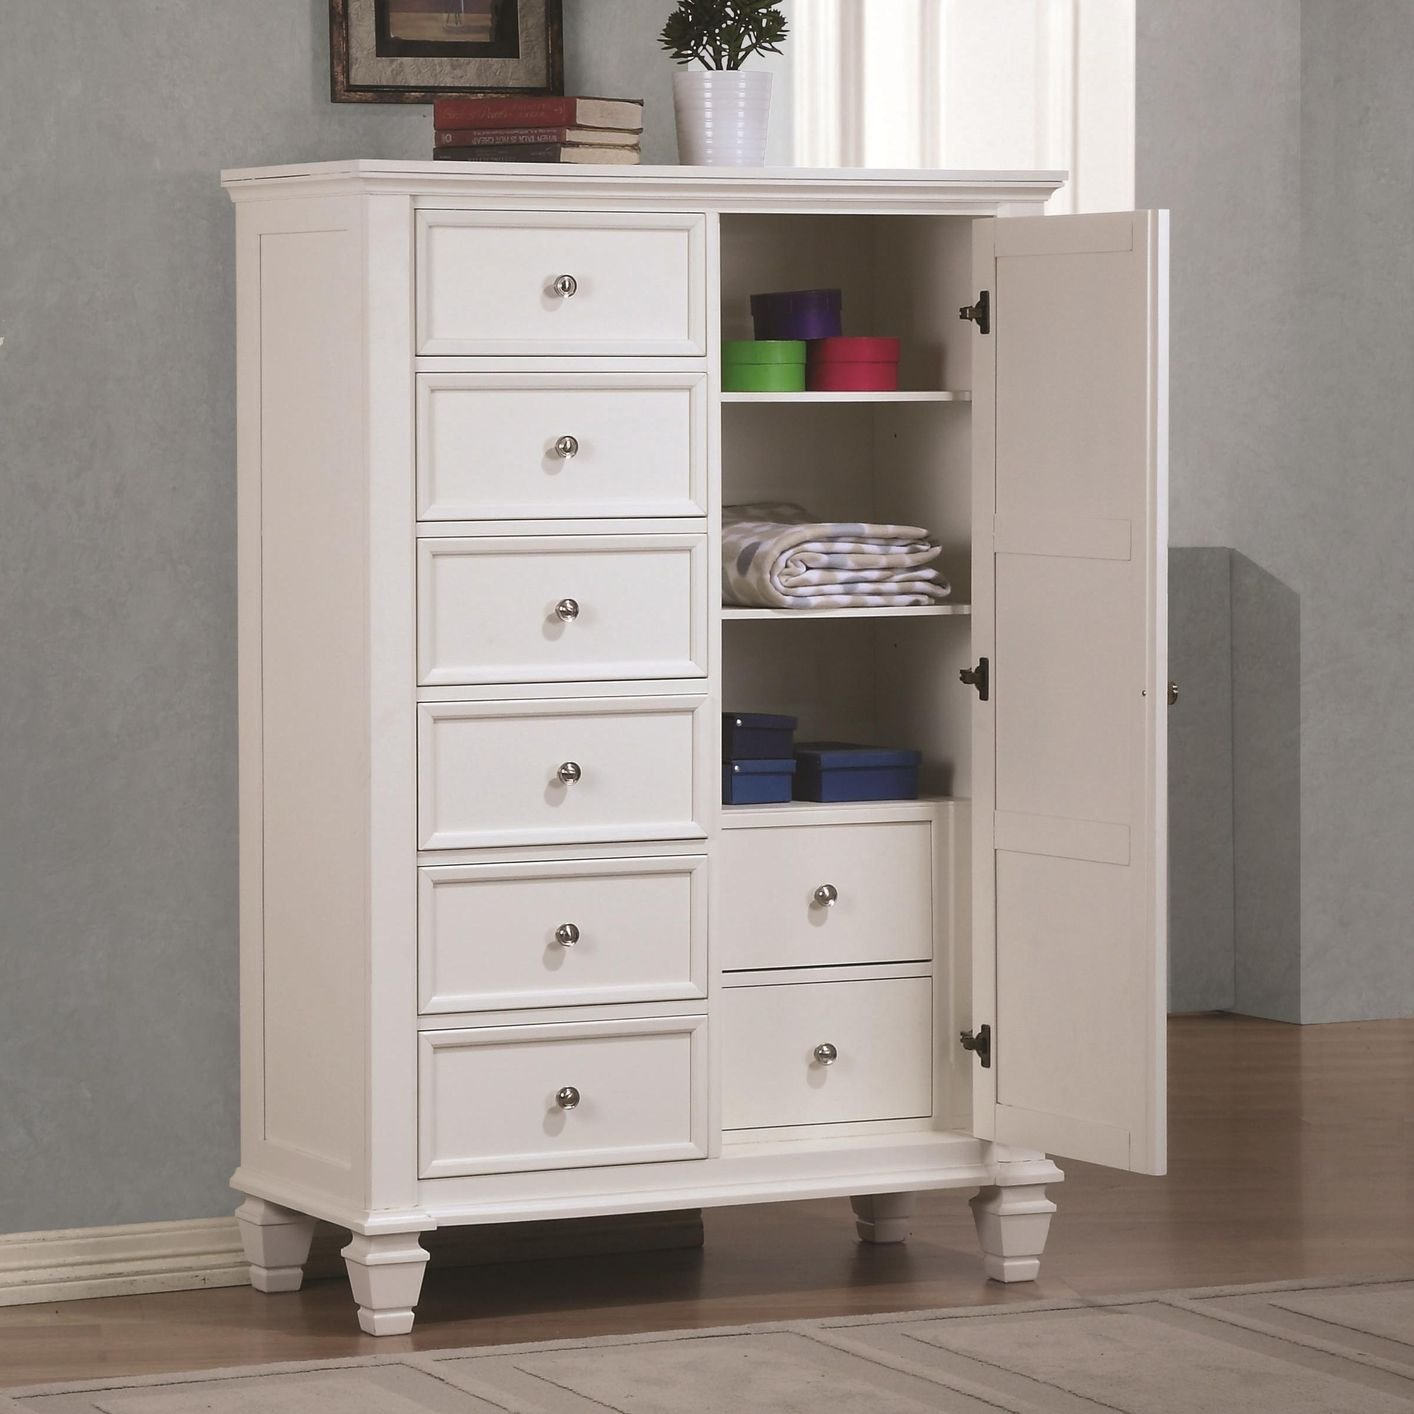 Bedroom Accent Furniture Coaster 201308 White Wood Chest Of Drawers Steal A Sofa